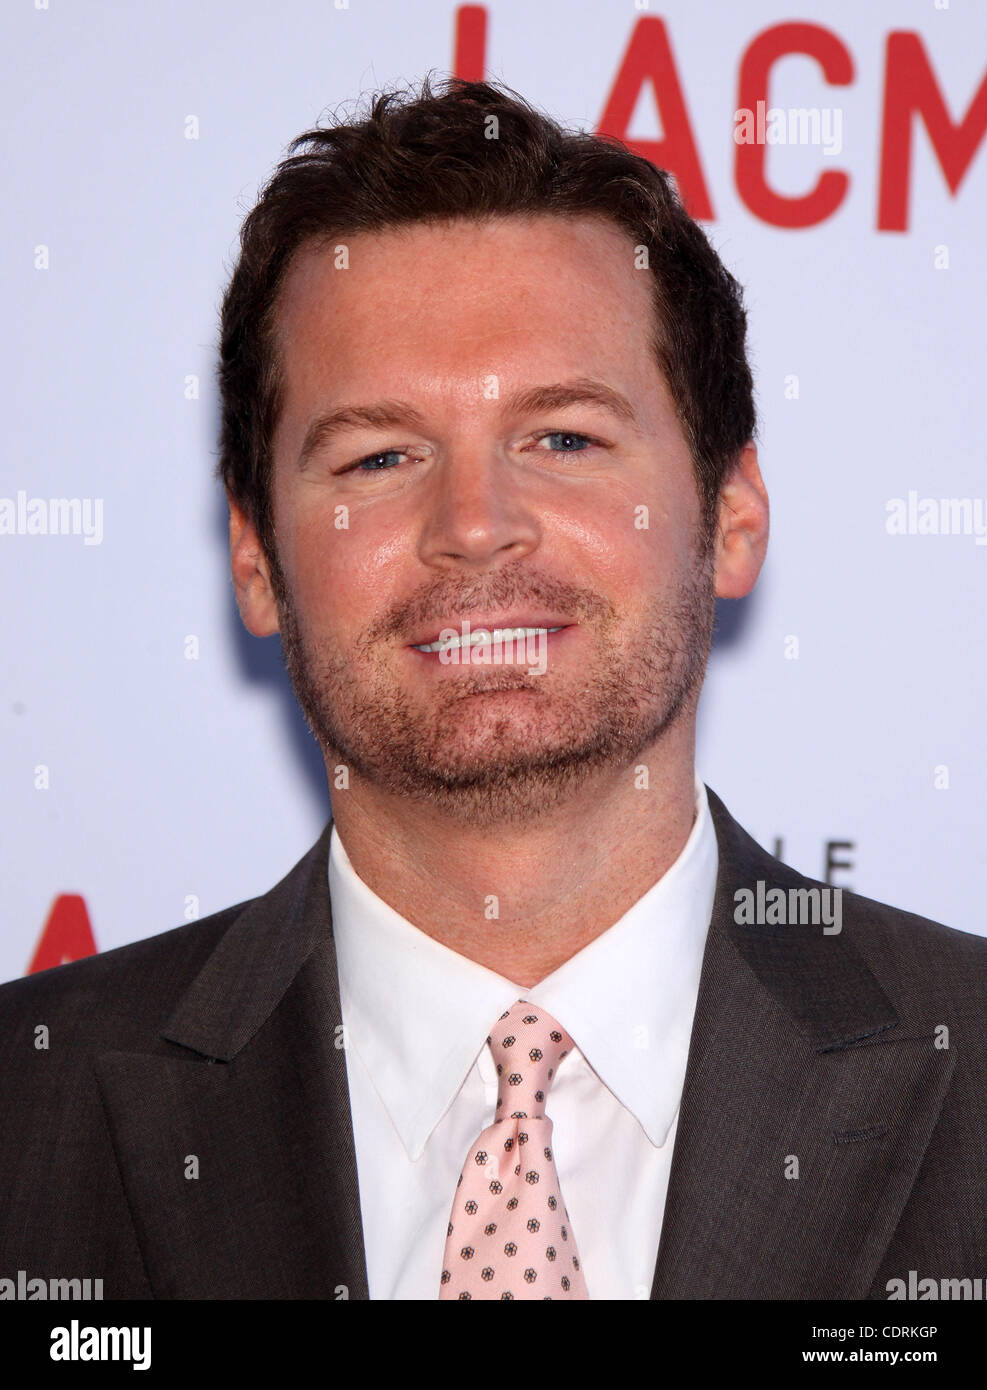 May 24, 2011 - Los Angeles, California, U.S. - ERIC MATHENY arrives for the premiere of the film 'Tree Of Life' - Stock Image